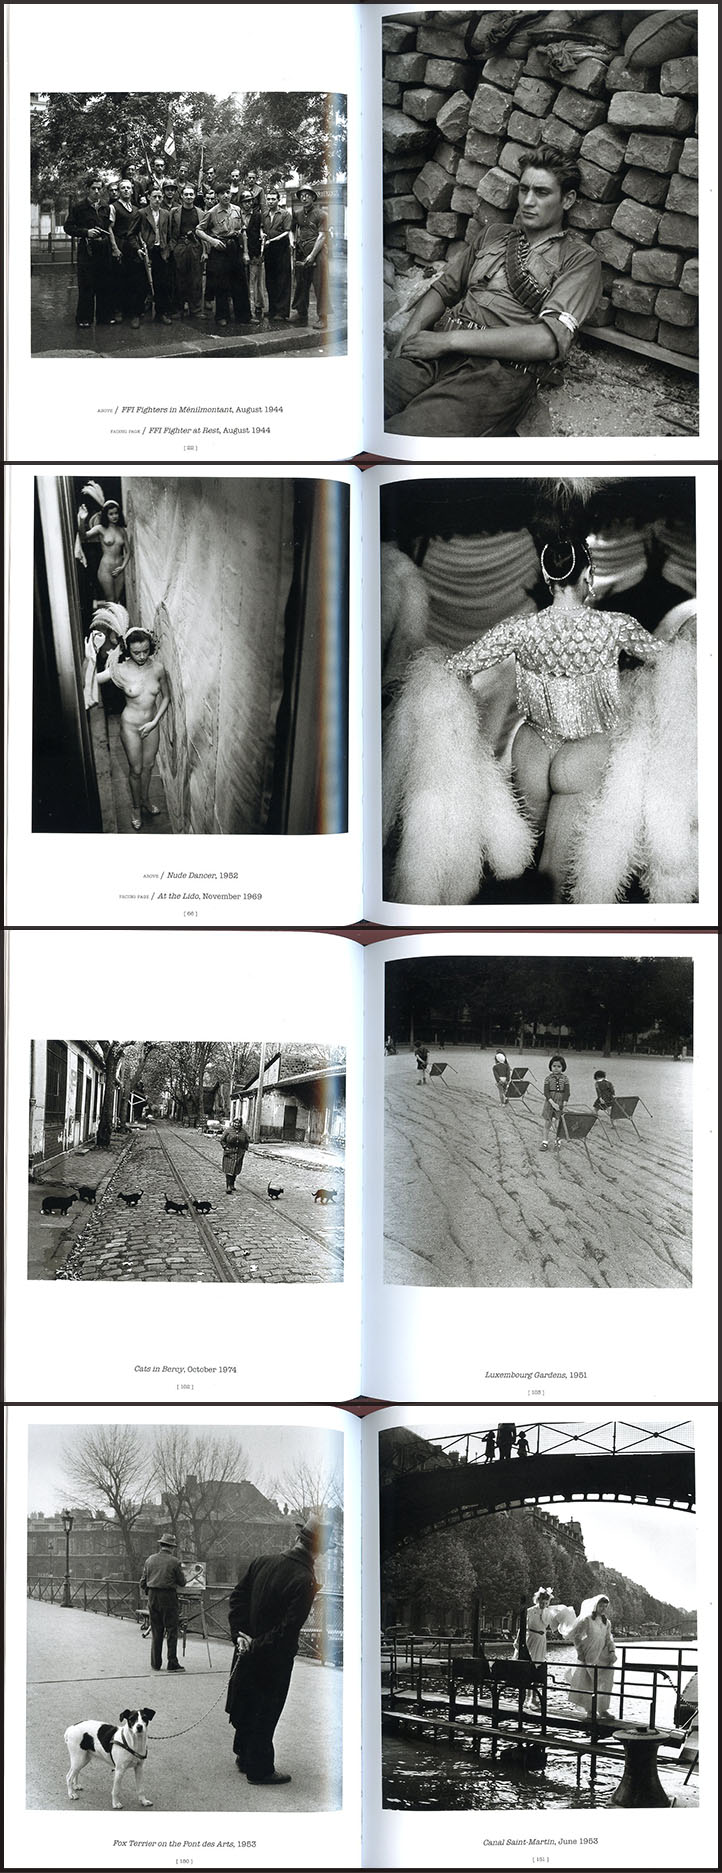 Paris by Robert Doisneau, photobook